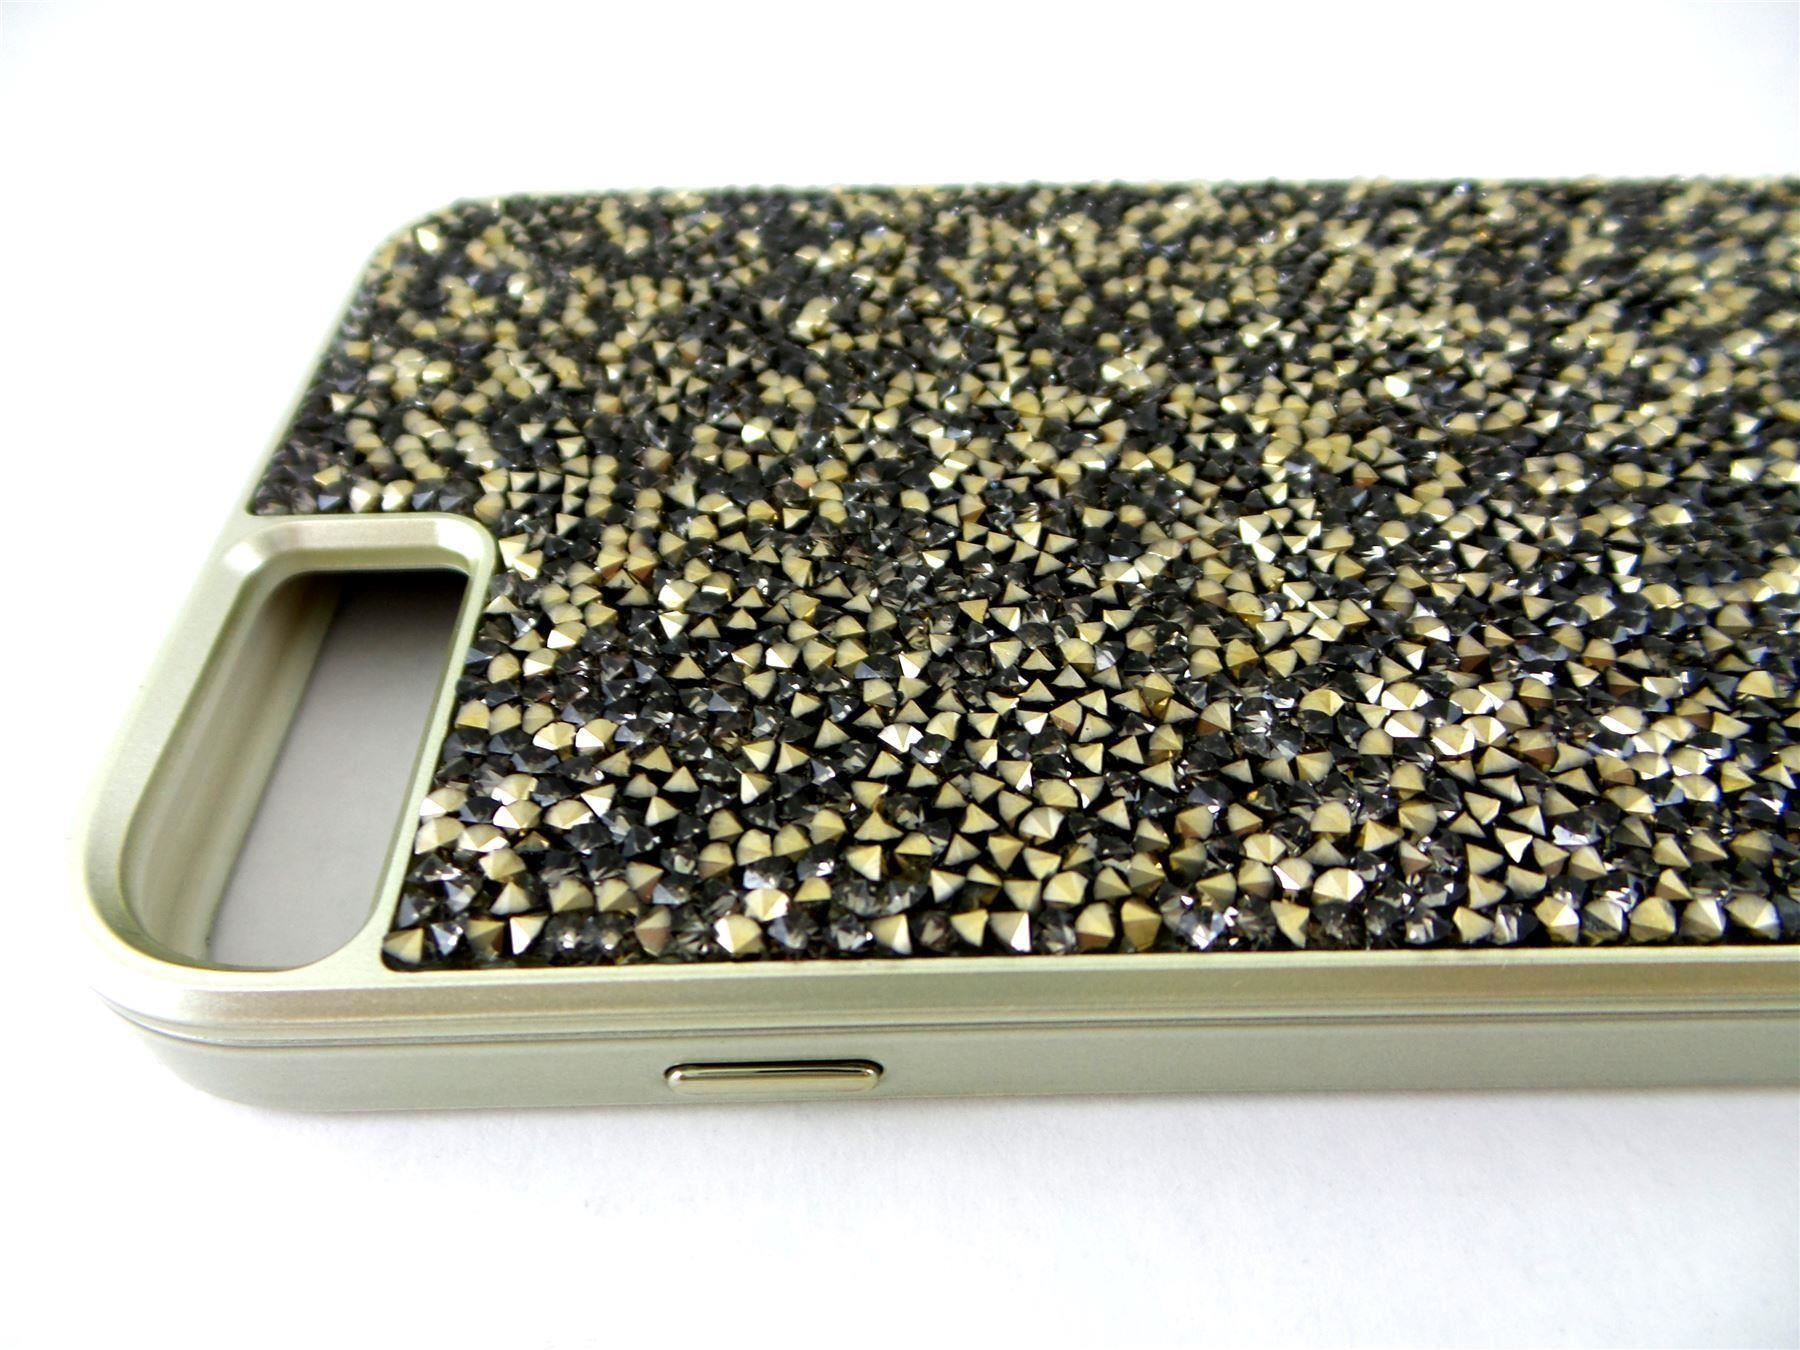 Iphone 6 Phone Cases: Case-Mate Brilliance Champagne Case Gold Apple IPhone 6